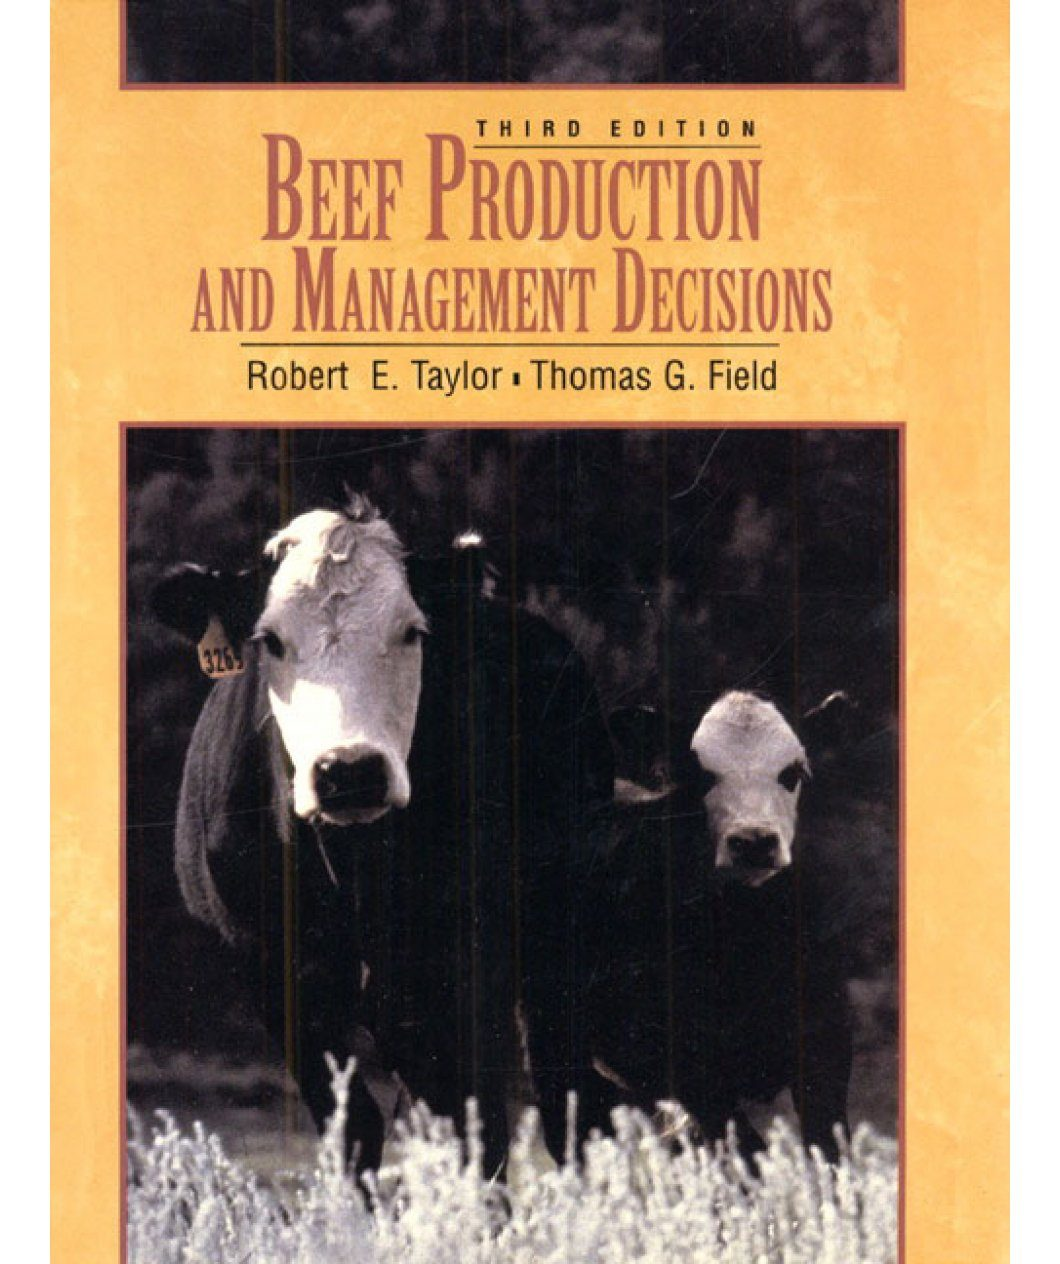 Beef Production and Management Decisions